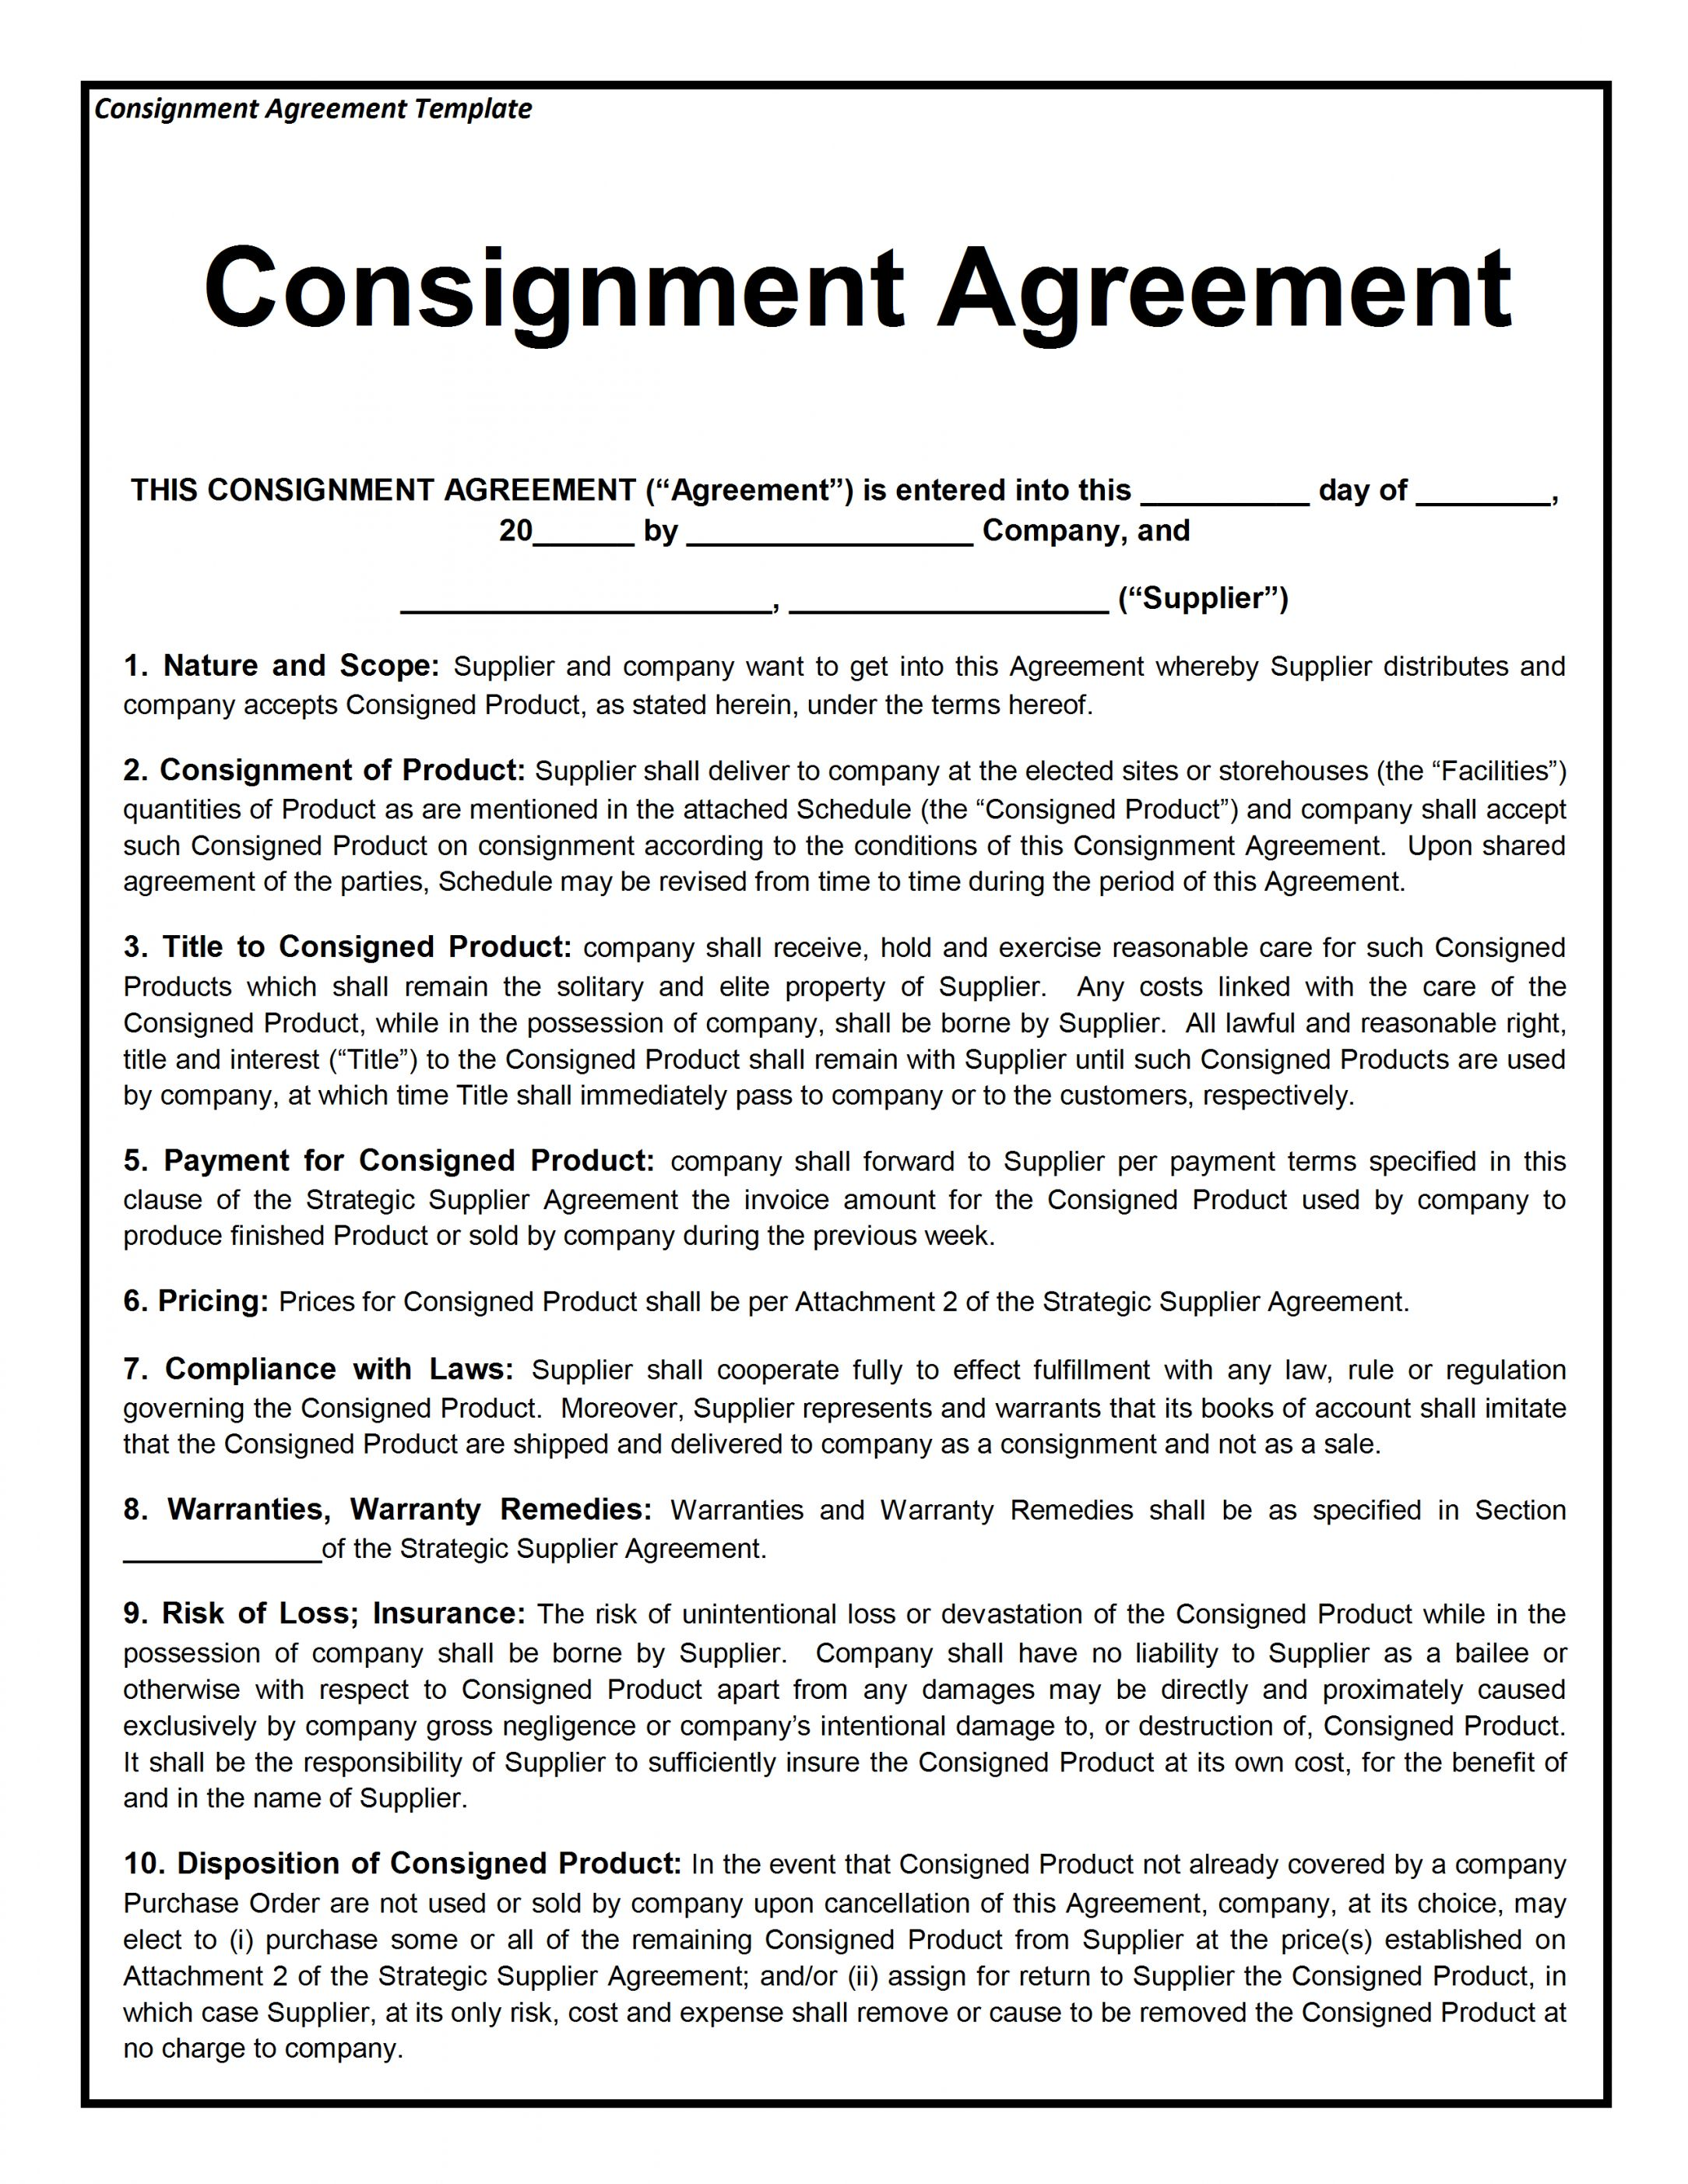 Short Franchise Agreement Sample In 2020 Contract Template